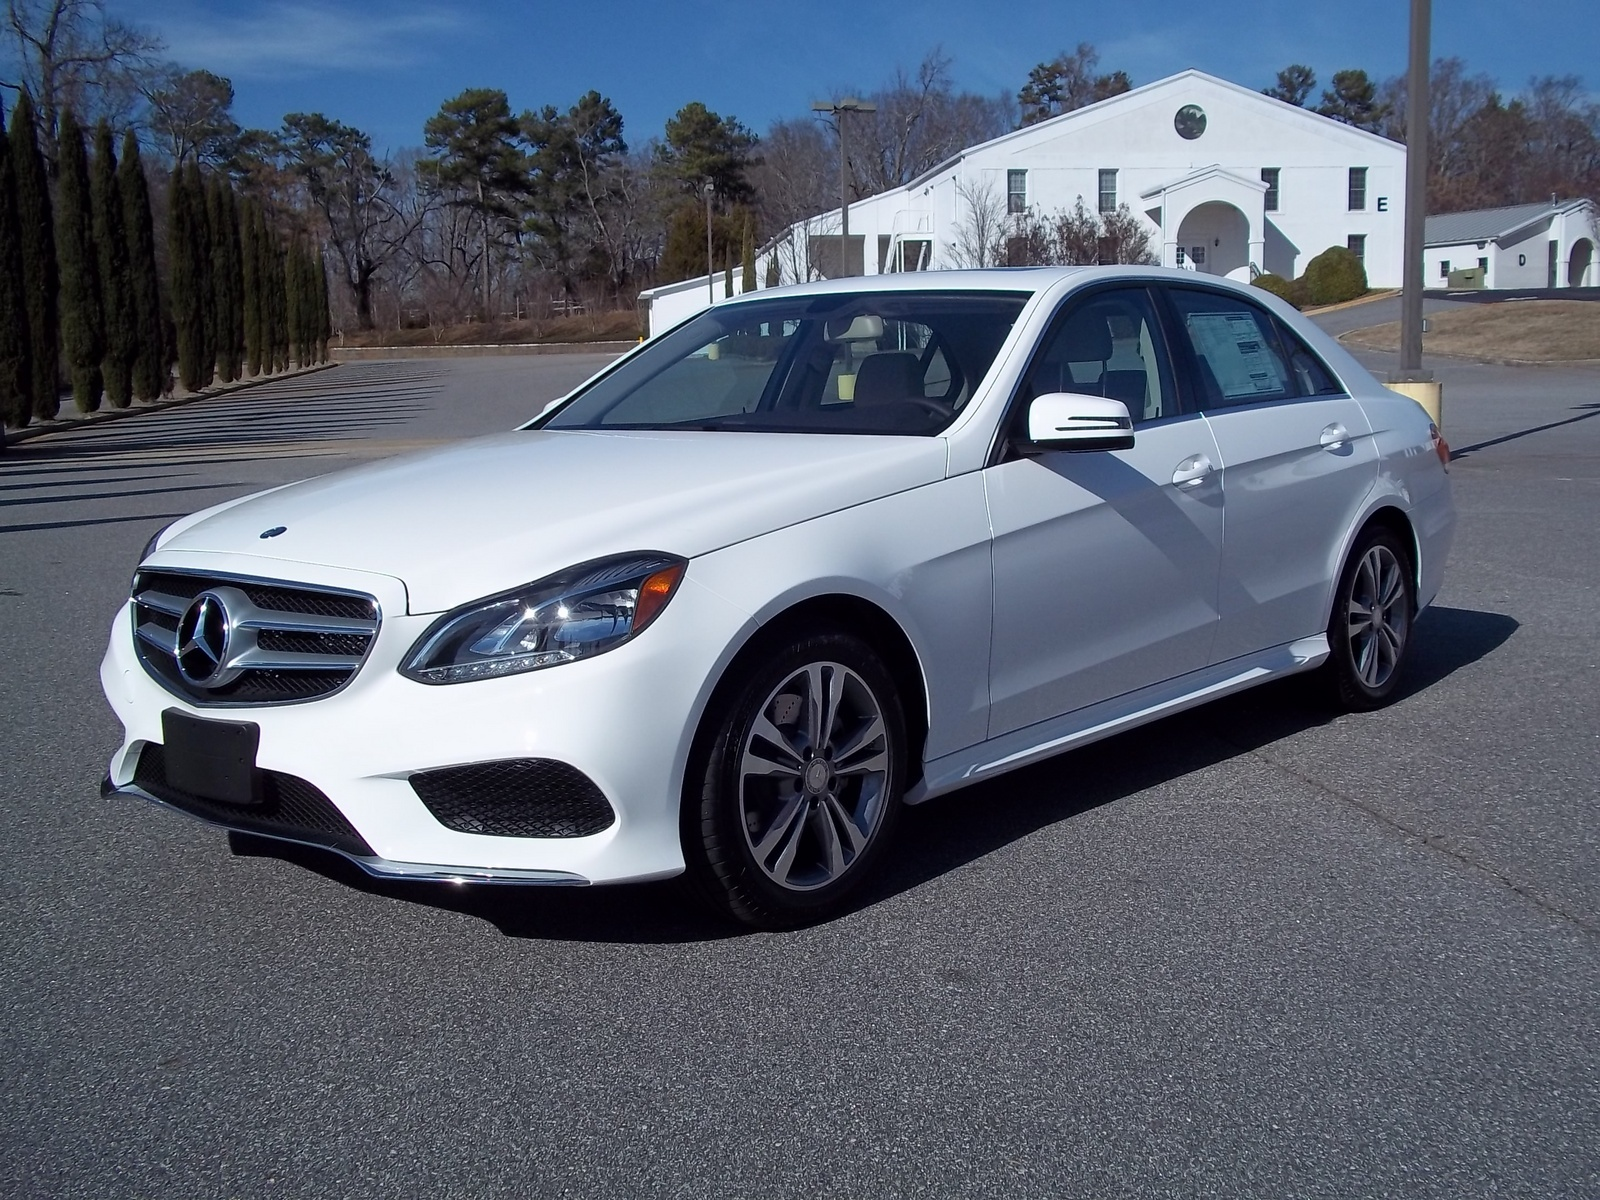 New 2015 2016 mercedes benz e class for sale cargurus for Mercedes benz class 2015